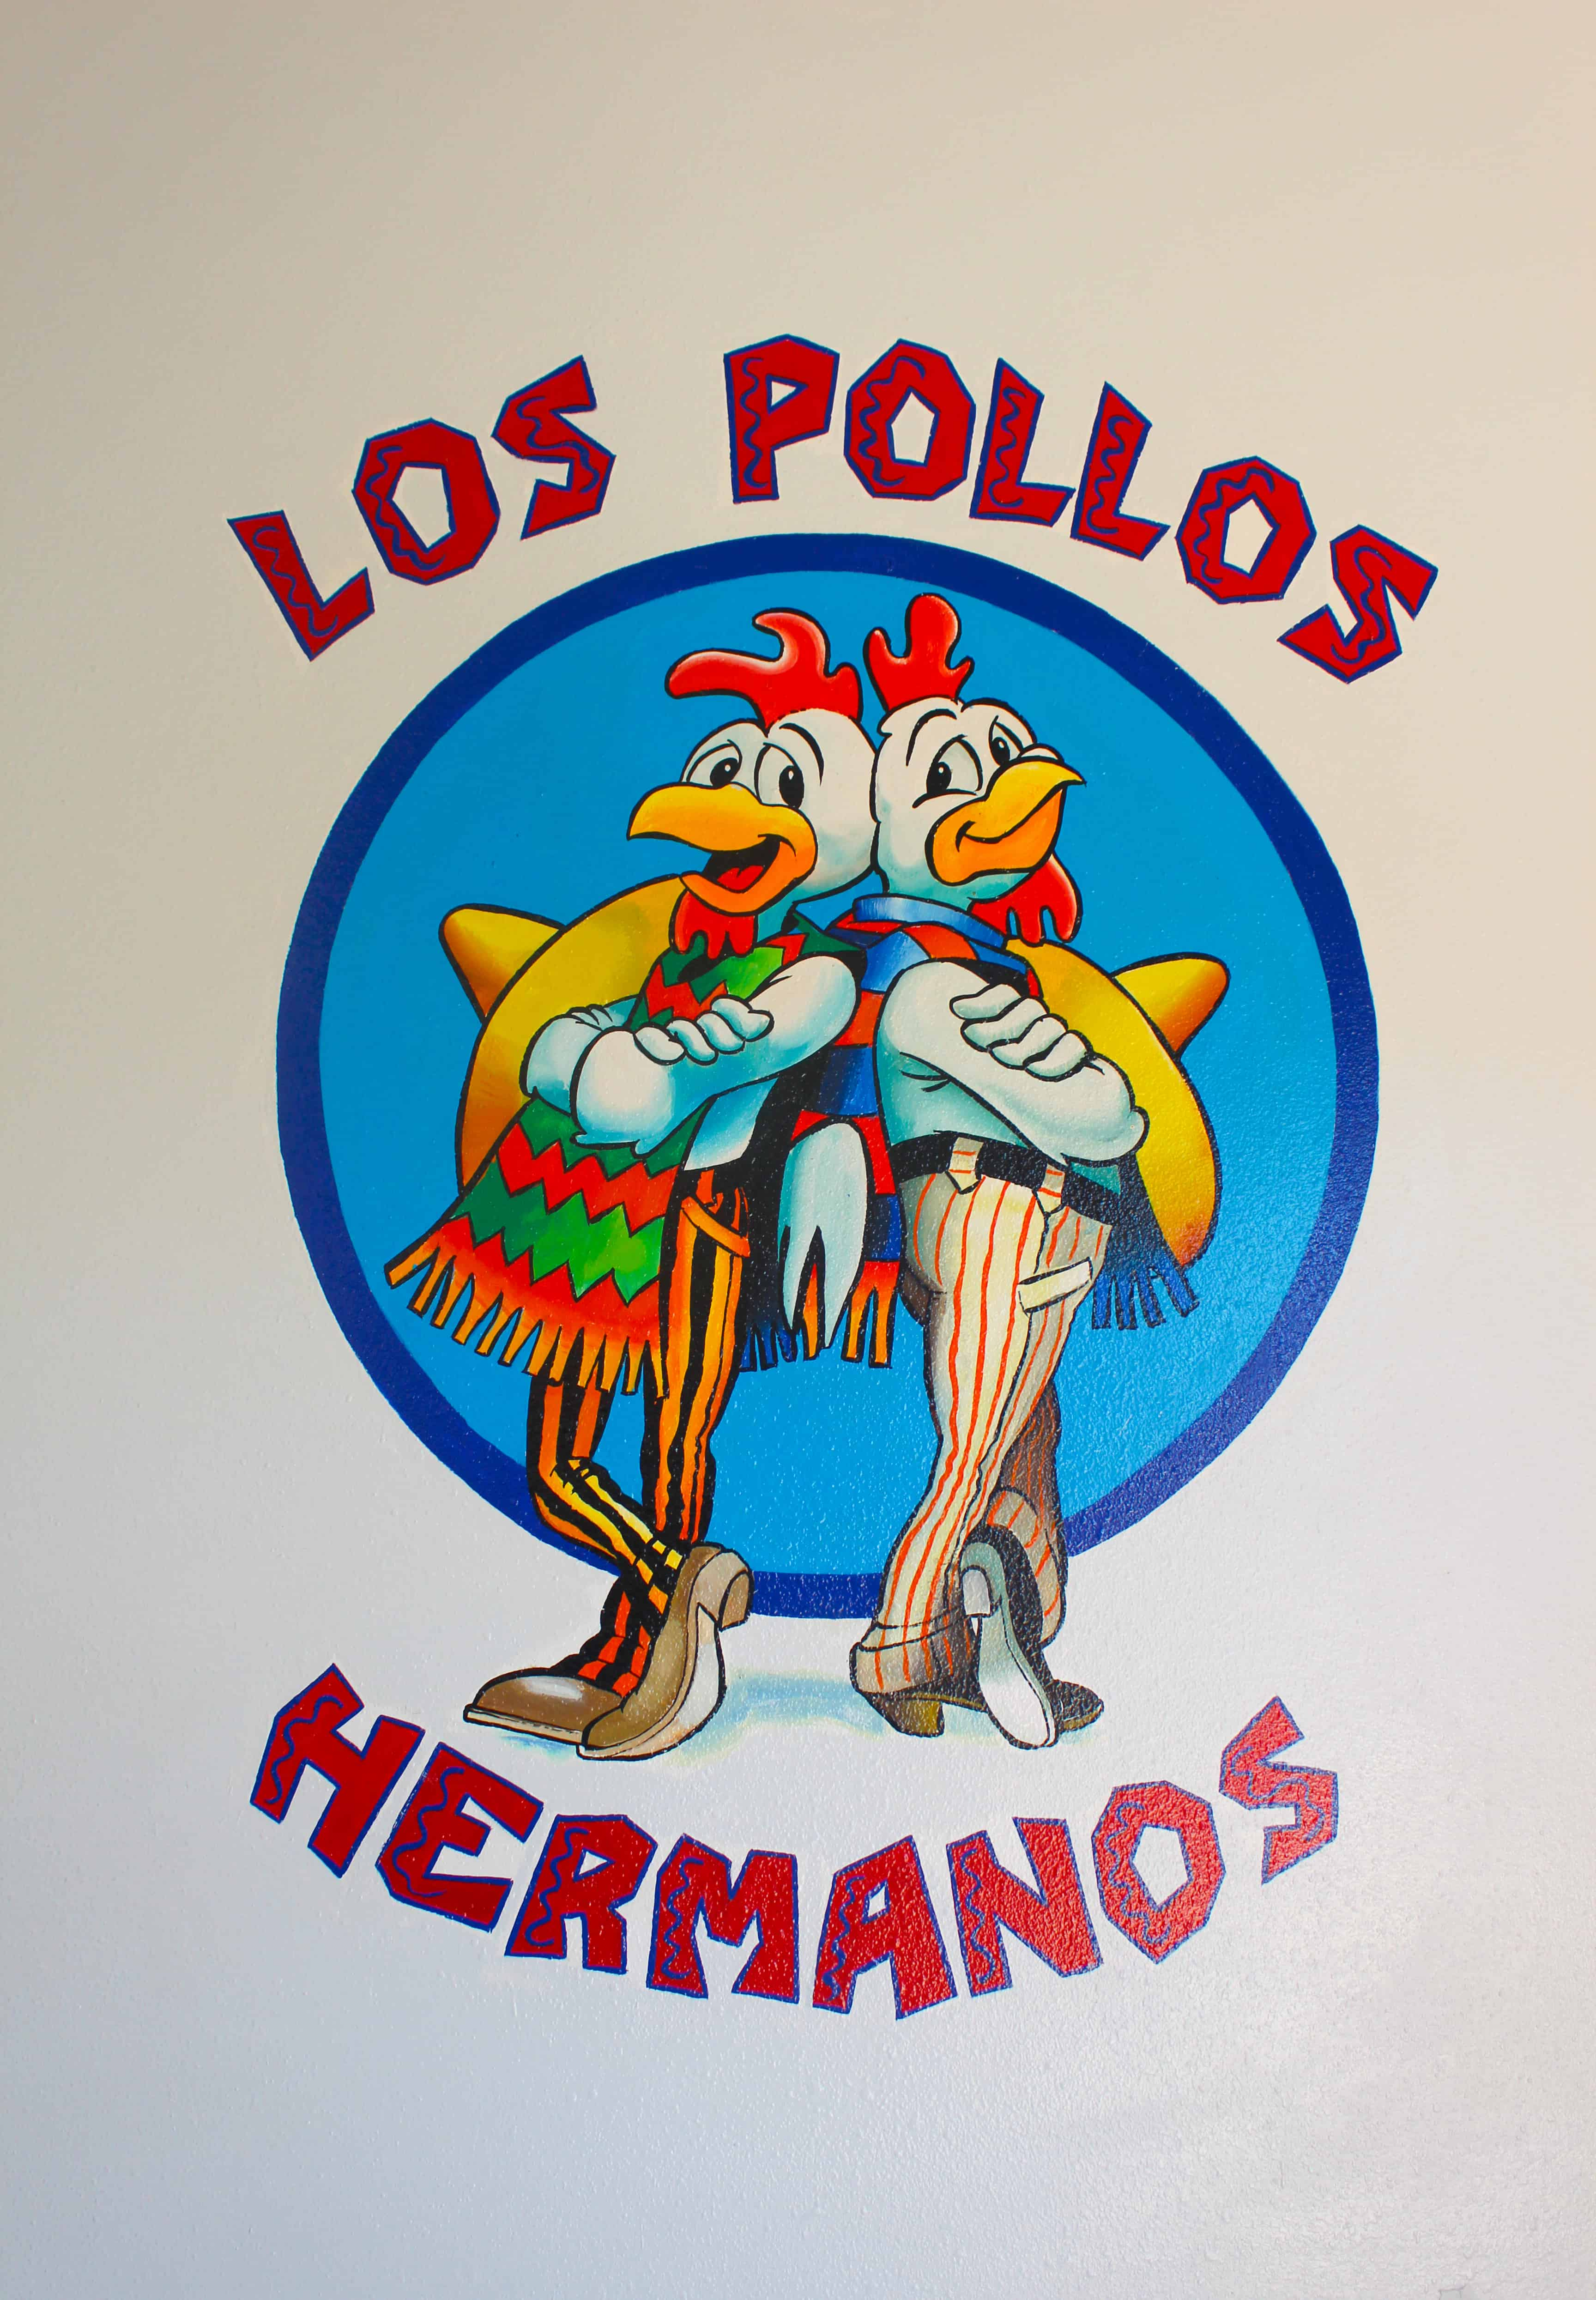 Los Pollos Hermanos Logo on Restaurant Entrance Breaking Bad